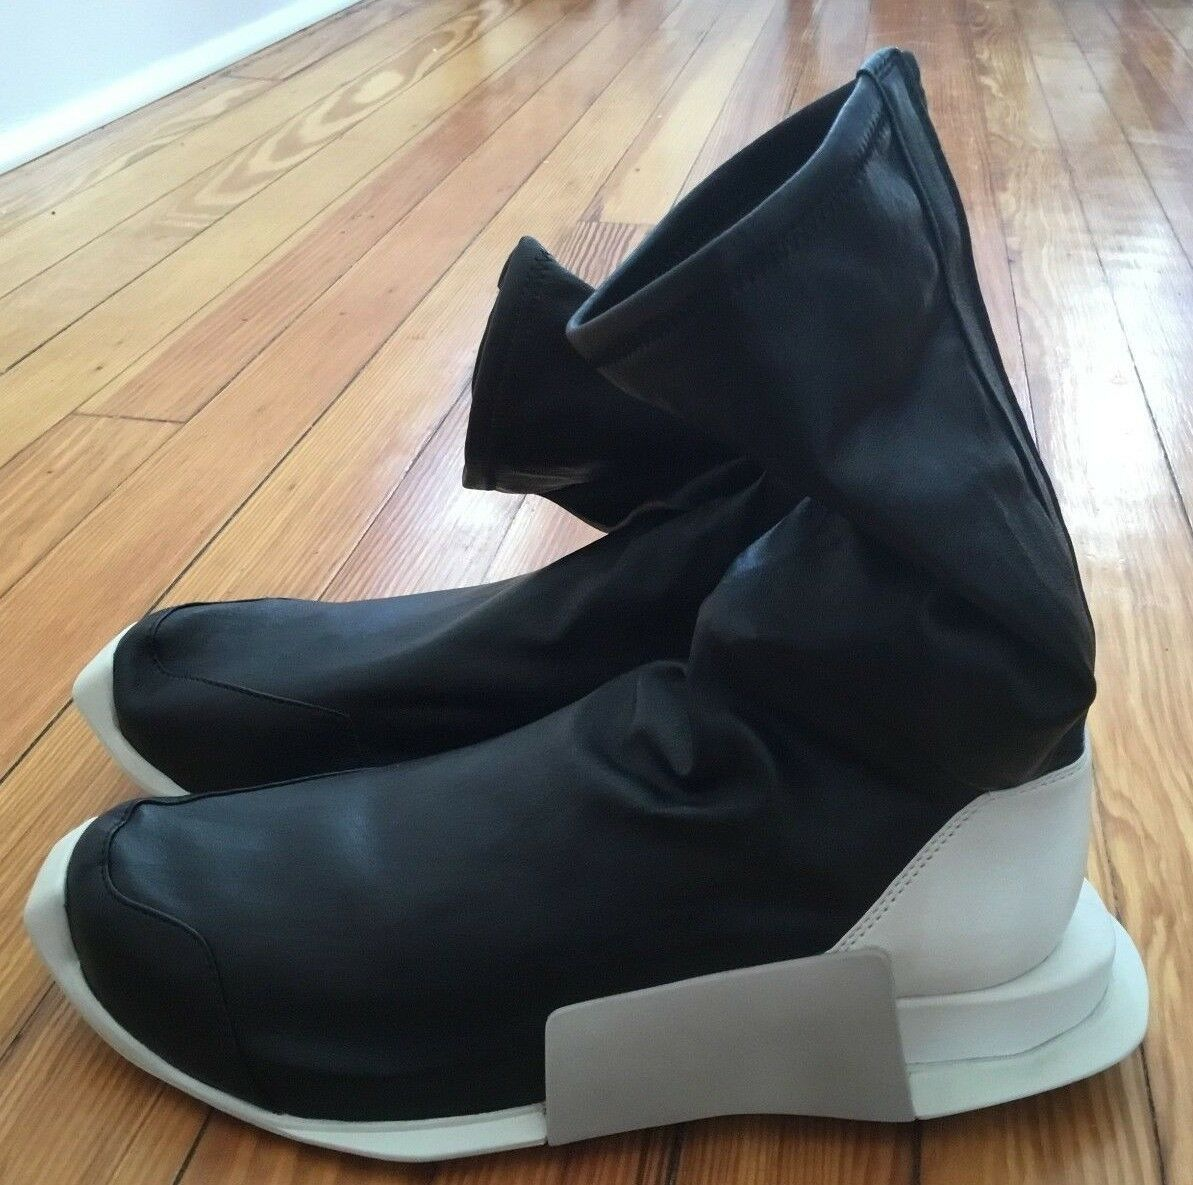 Adidas Rick Hi Owens Level Runner High Hi Rick BY2932 Hombre zapatilla leather boot SZ 9.5 3c0af3